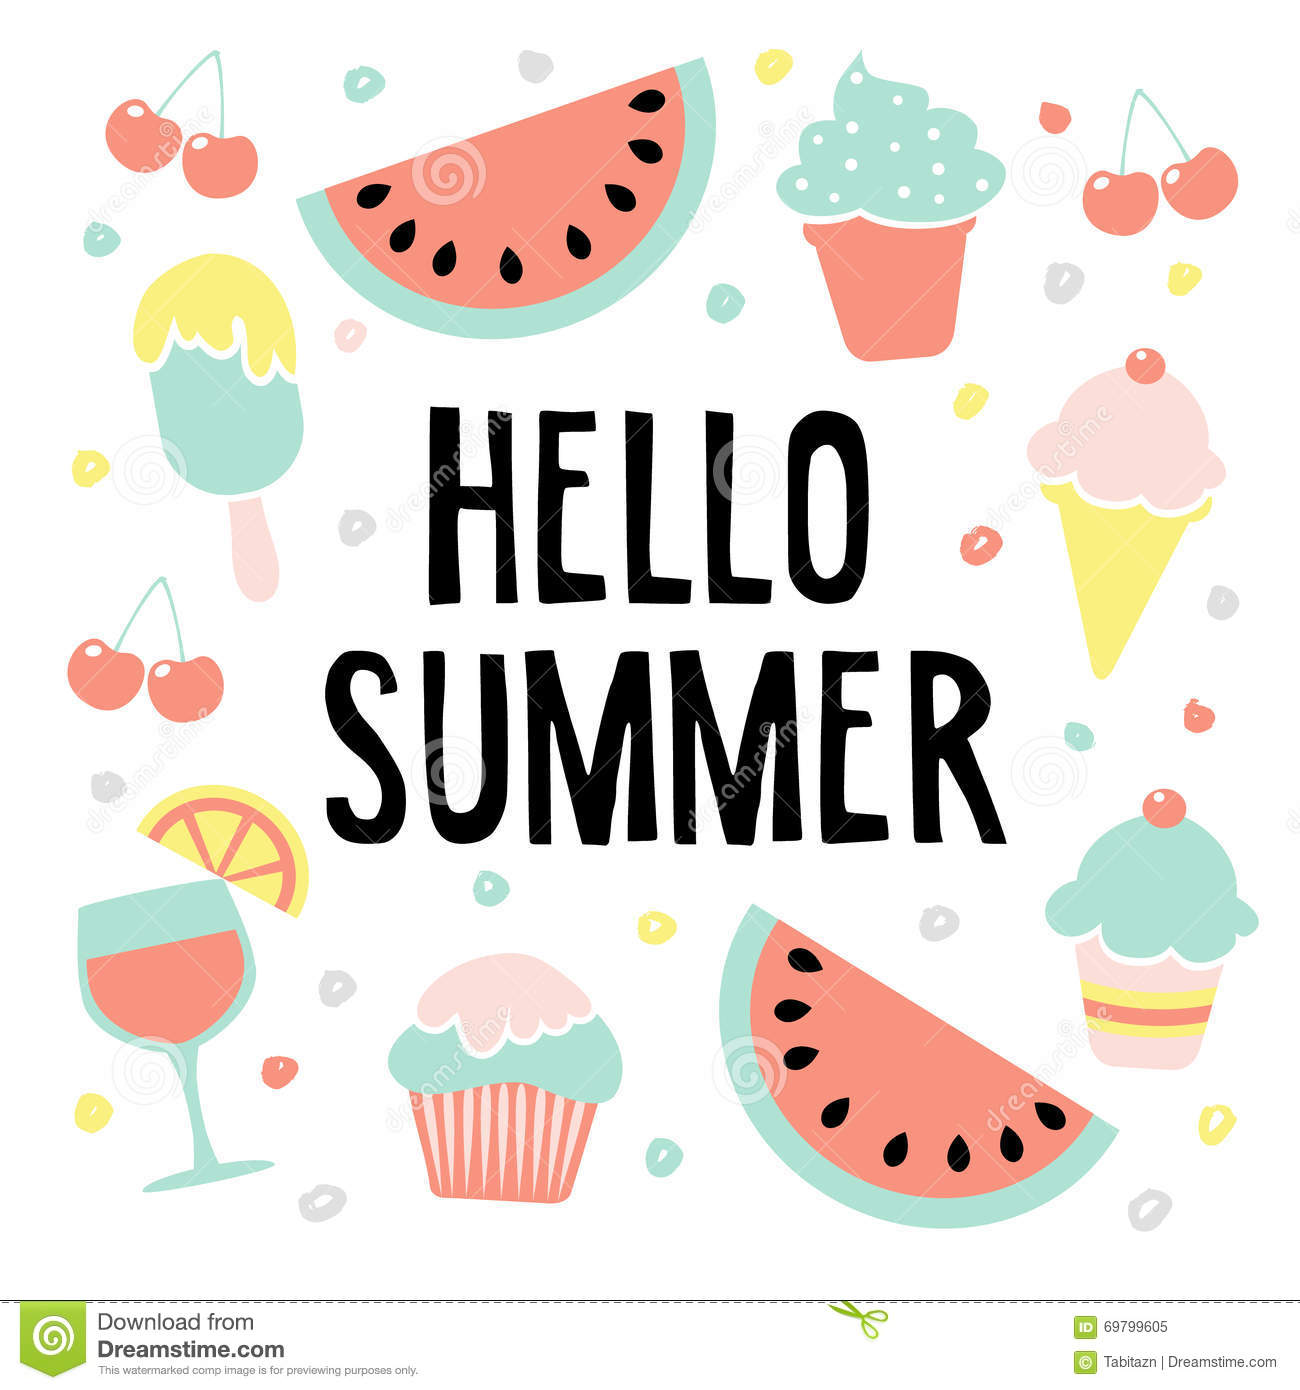 Hello Summer Greeting Card With Watermelon, Ice Cream, Cherries And Drink,  Il.